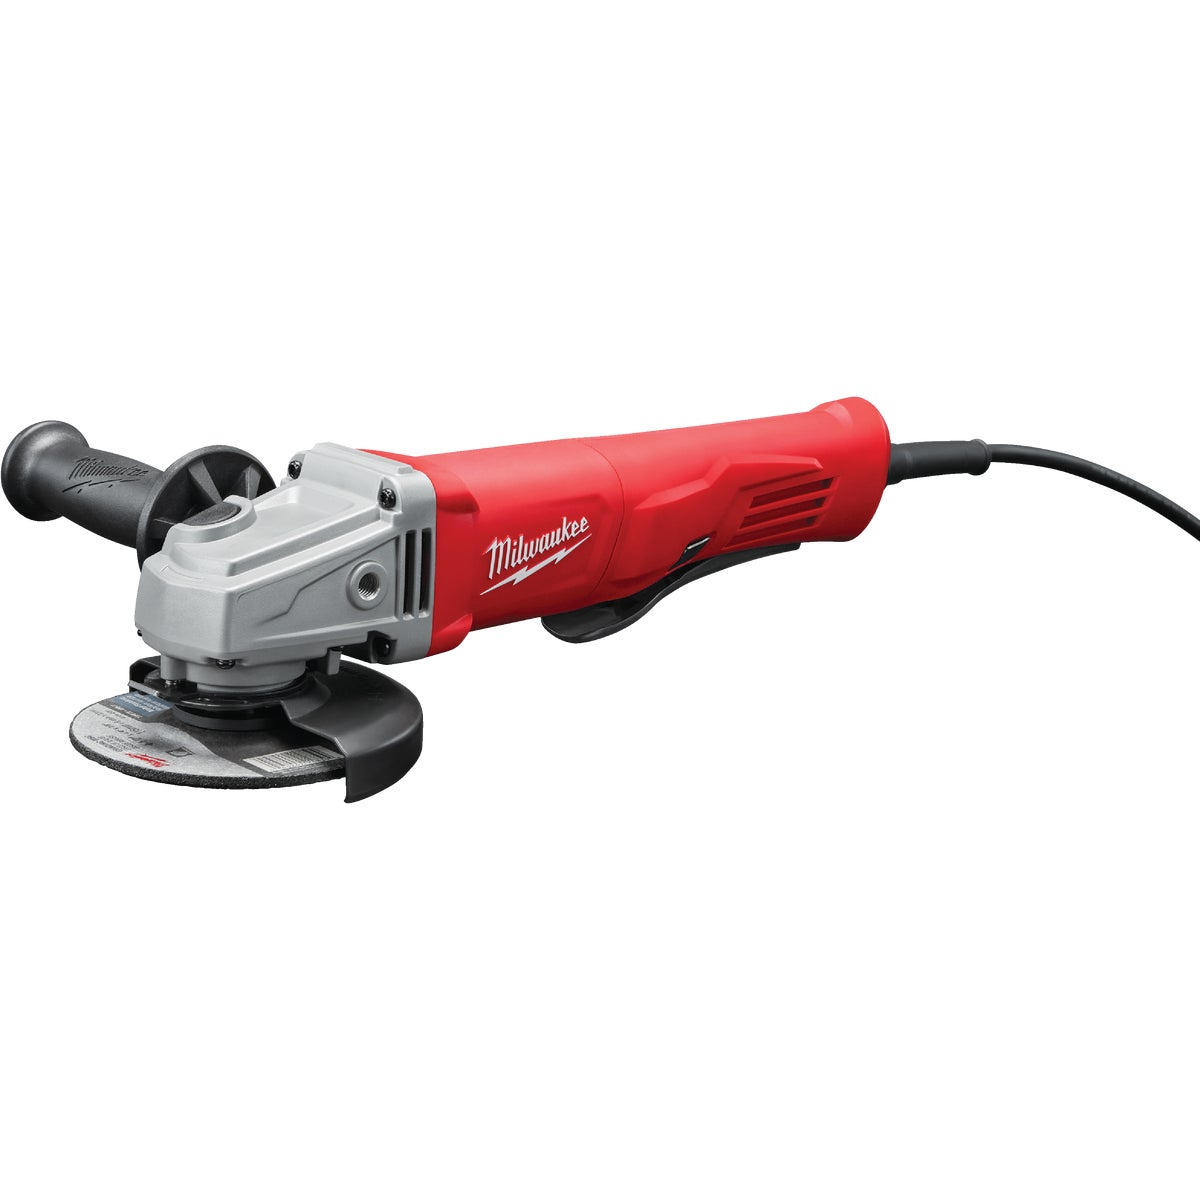 "4-1/2"" ANGLE GRINDER - 614630 by Milwaukee Elec Tool"